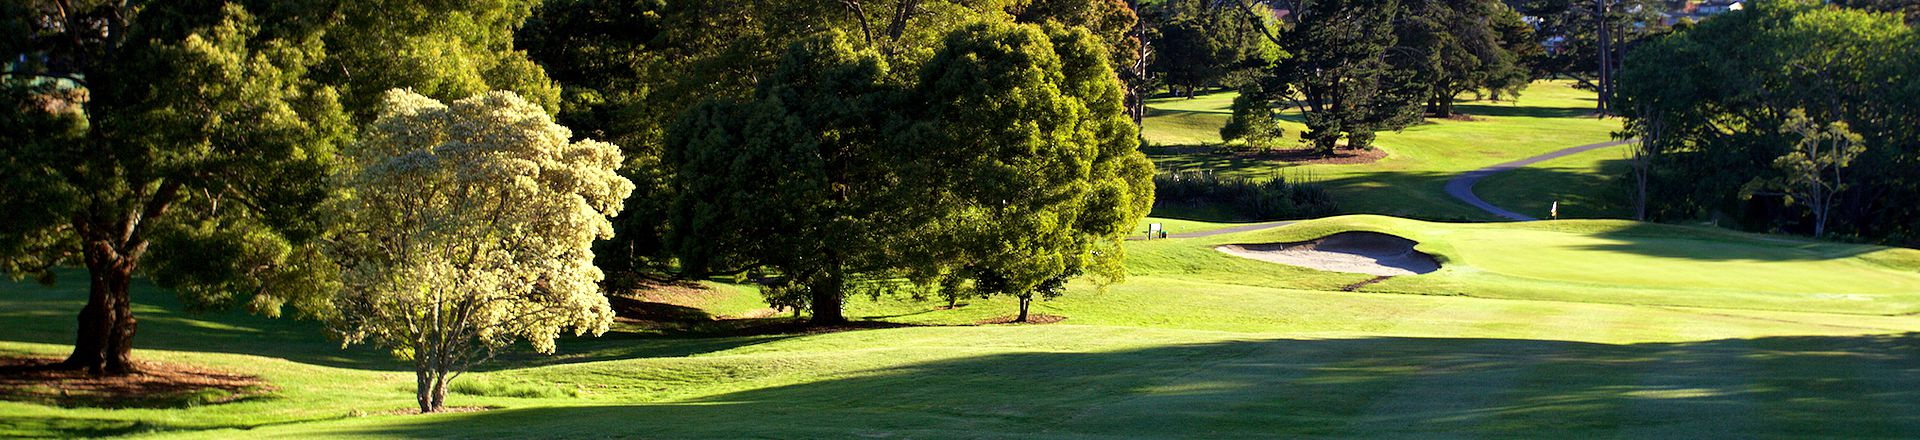 <strong>MAUNGAKIEKIE GOLF CLUB<span><b>view larger</b></span></strong><i>→</i>